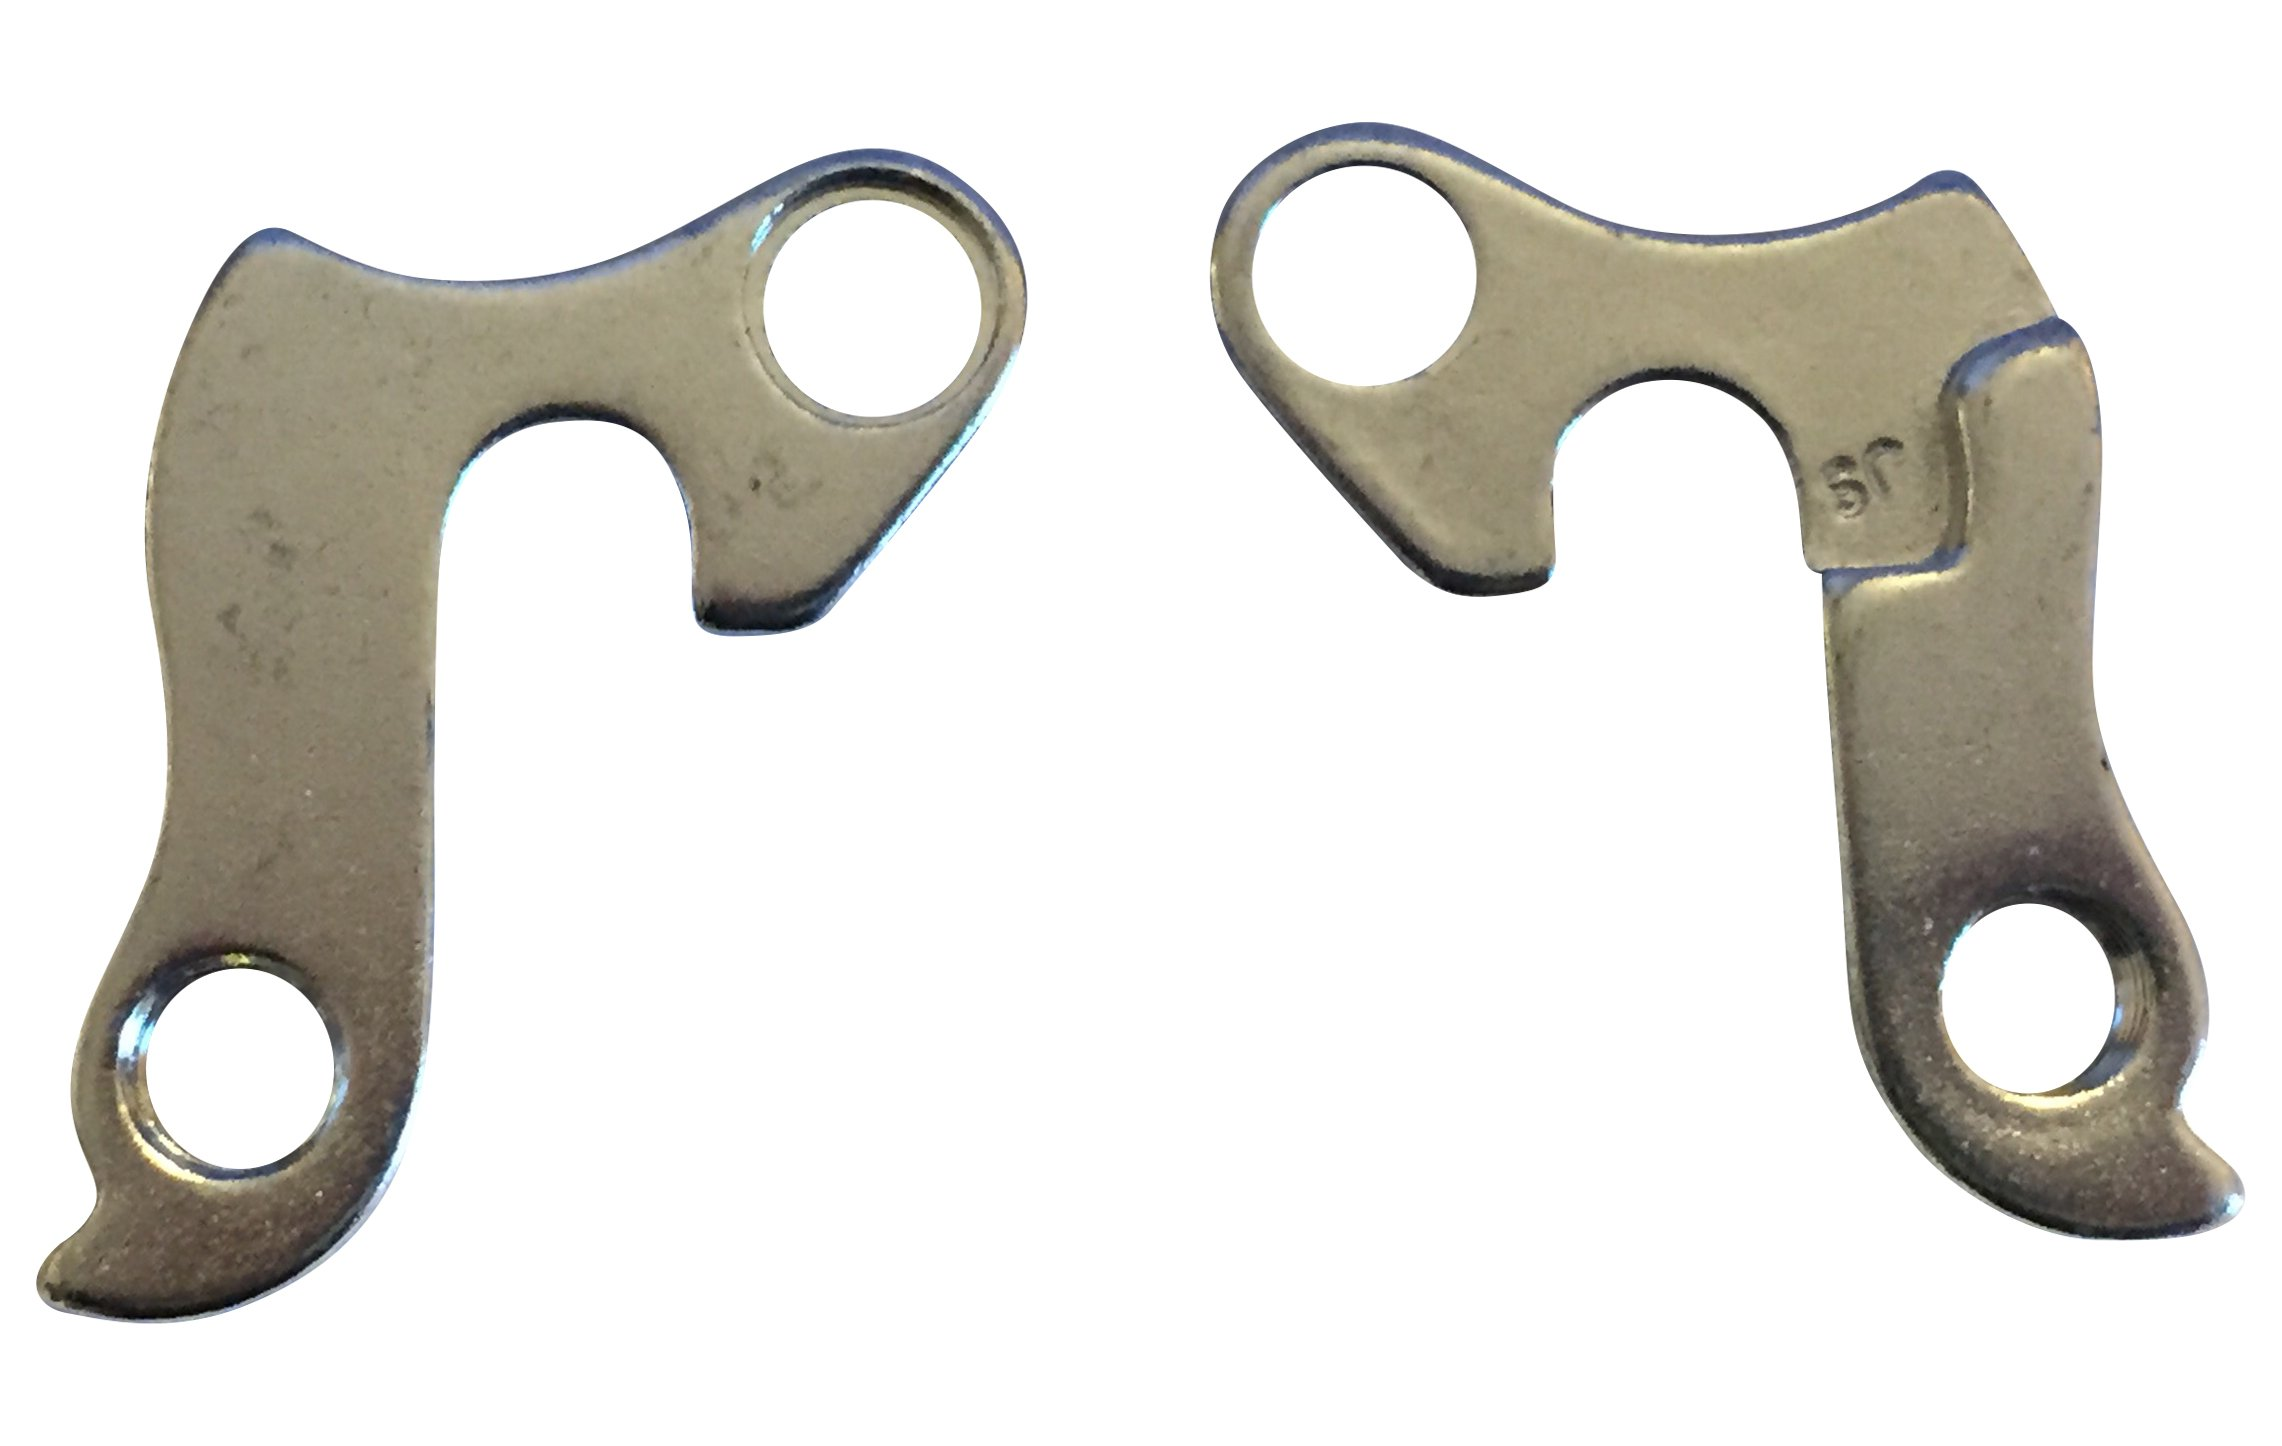 Set of 2 Bicycle Derailleur Hanger 25 with mounting bolts for Schwinn Kona Bianchi Blue BMC Diamondback Cube Raleigh K2 Raleigh Fuji Ghost Haro Marin and more